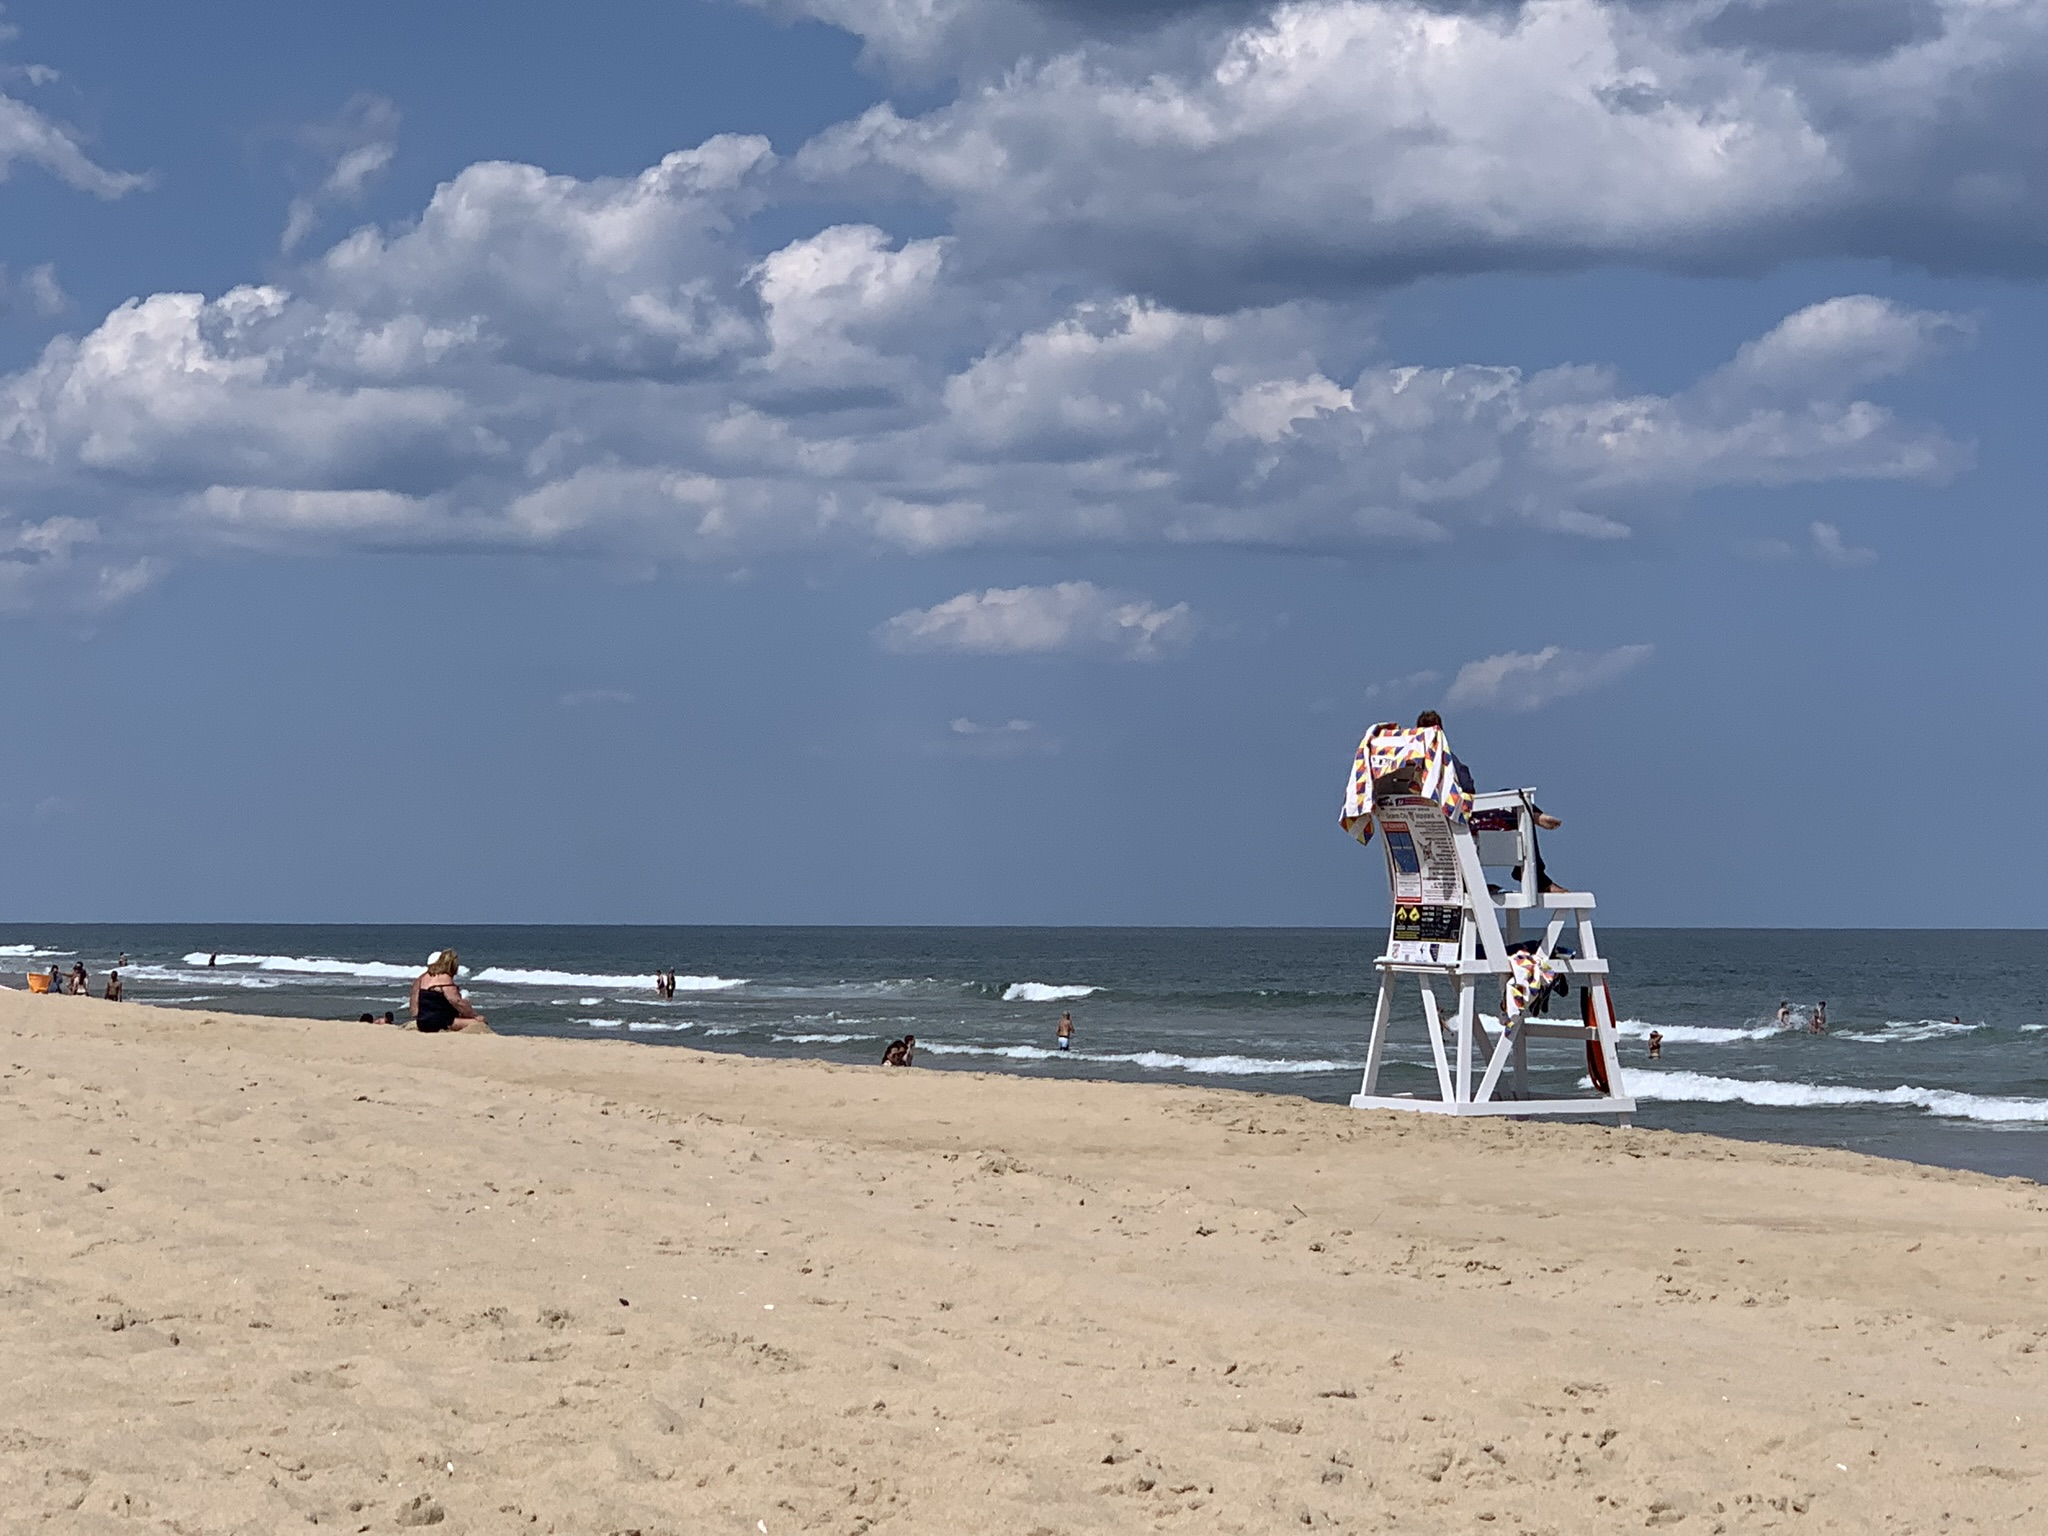 A day at the beach, but the clouds may get in the way and impact your day. Ocean City, Maryland.